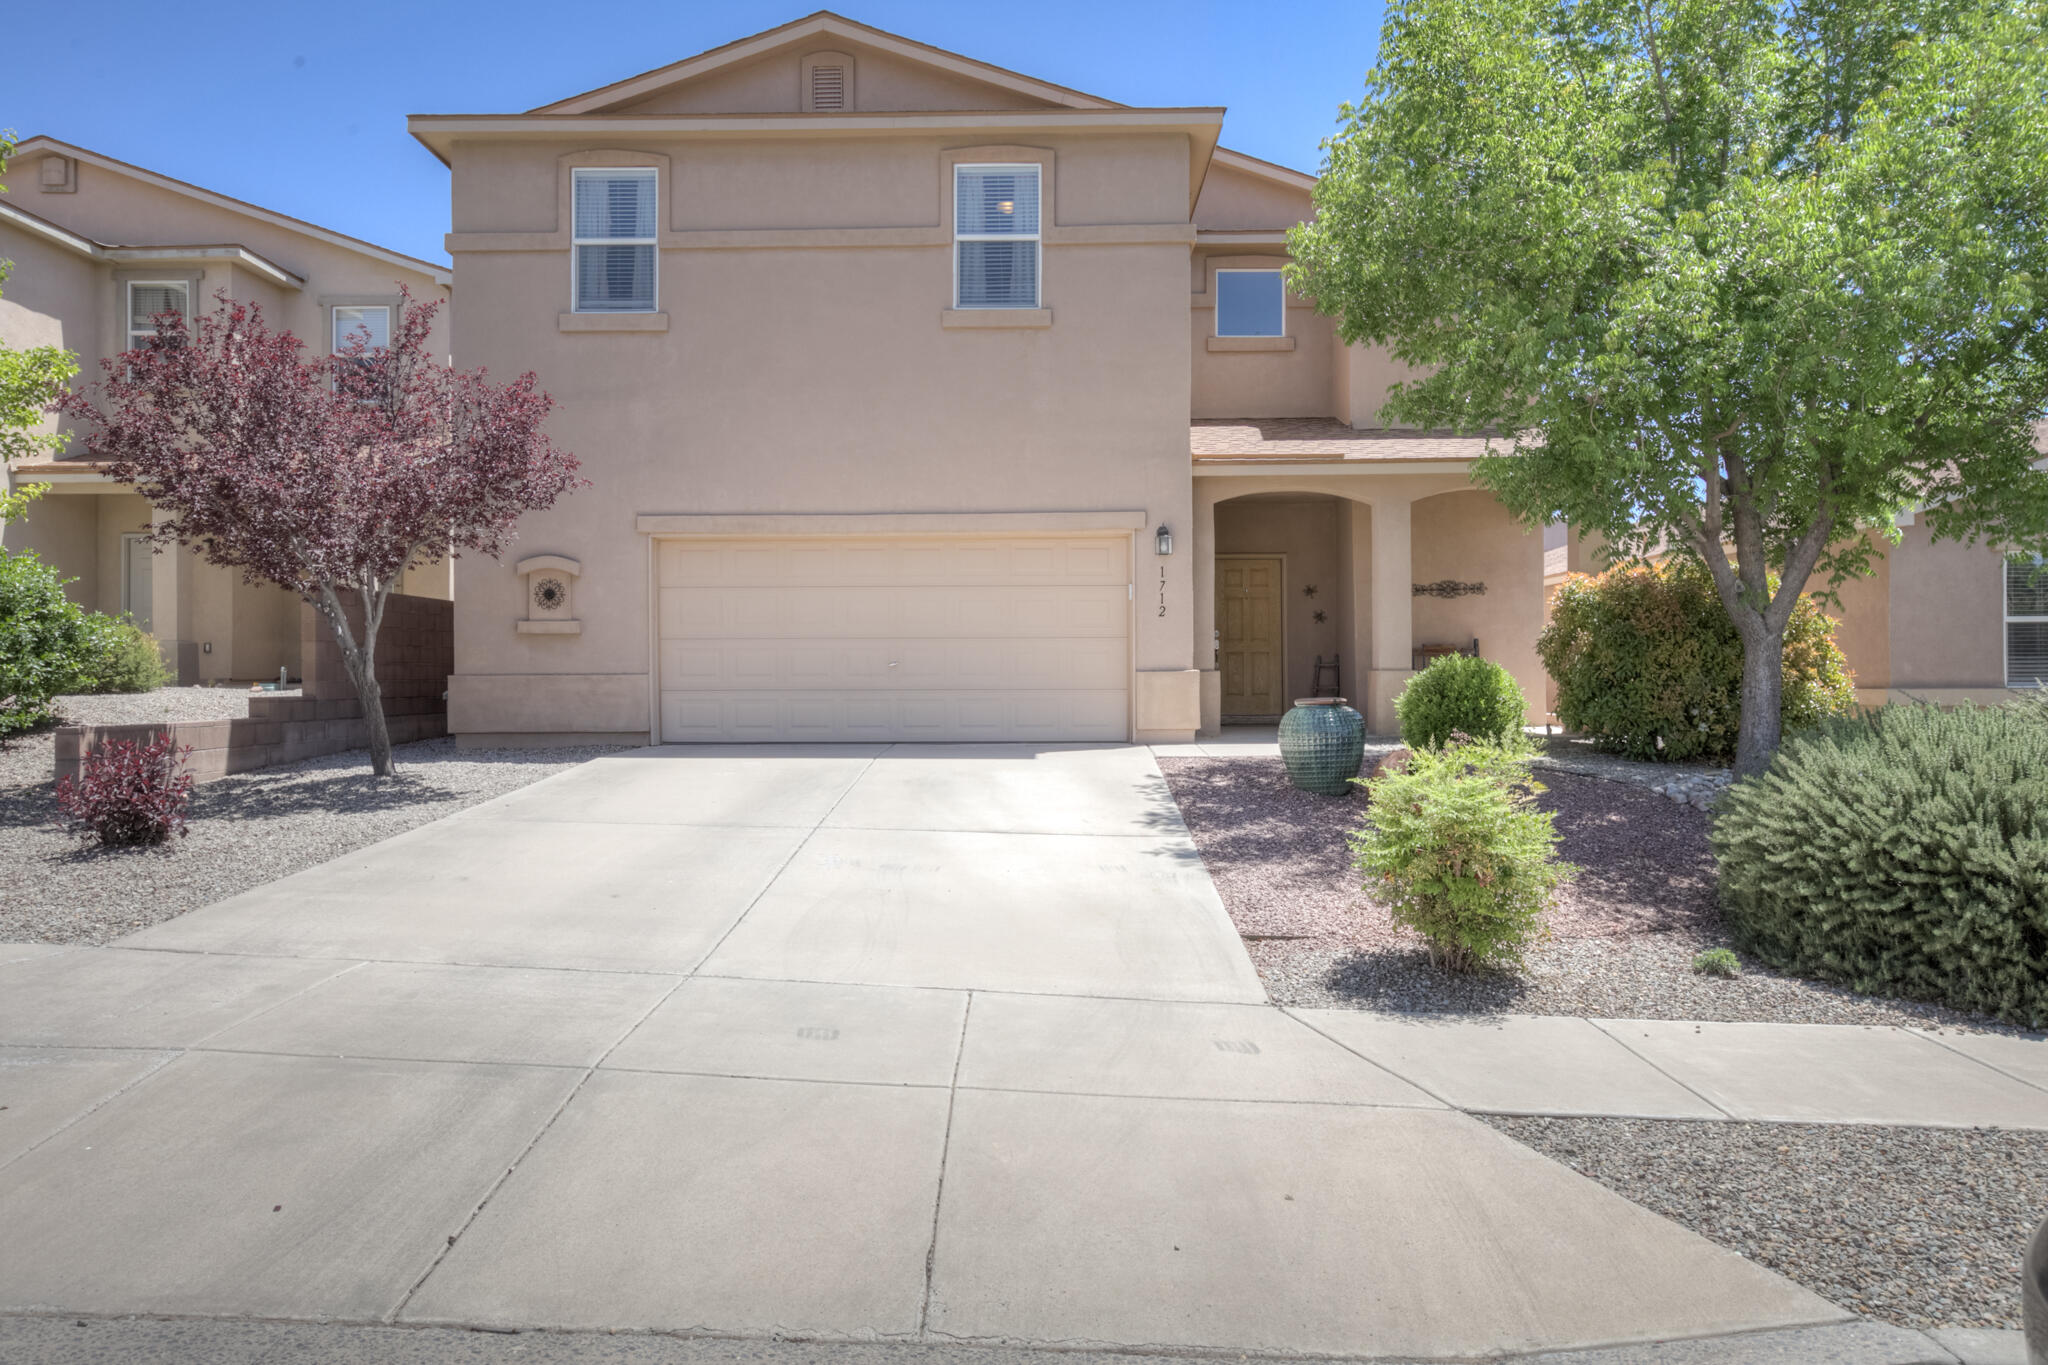 Well kept & excellent floorplan in the sought after Cabezon neighborhood! This property features 4 bedrooms + large loft upstairs & inlaw suite/5th bedroom on the main level w/ 3/4 bathroom. Spacious great room has gas fireplace and opens to the kitchen & dining areas. The kitchen has newer stainless appliances, corian countertops, walk-in pantry and feels light & bright. The master bedroom is oversized w/ plenty of space for an additional seating area. Master bathroom has 2 sinks, separate shower & garden tub + walk-in closet!  Excellent storage throughout. The backyard is nicely manicured w/ a lawn, auto sprinkler/drip system & covered + open patio spaces. Located w/ easy access to parks, grocery stores, restaurants, hospitals & schools! Schedule your private showing w/ a Realtor today!